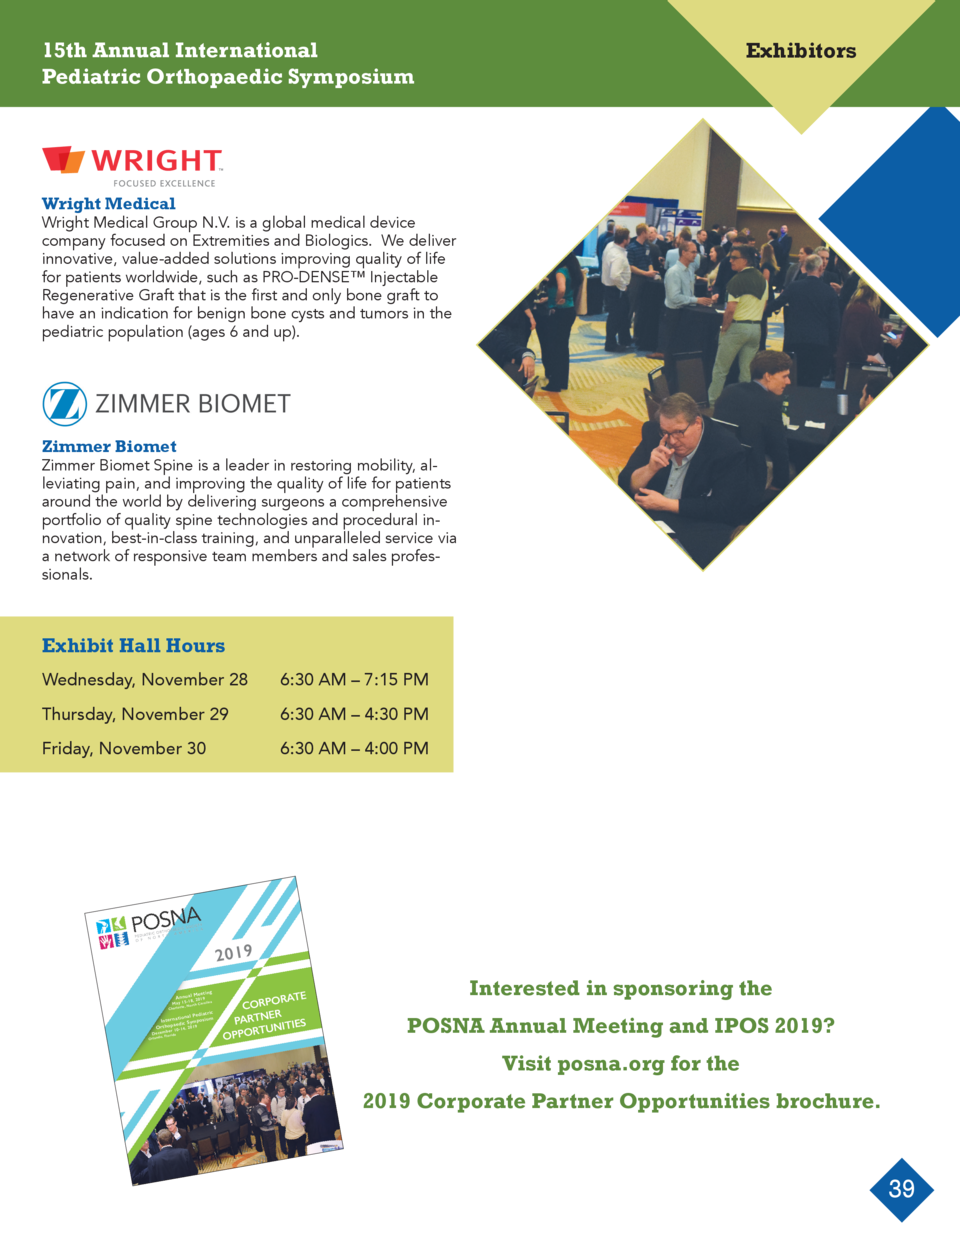 15th Annual International Pediatric Orthopaedic Symposium  Exhibitors  Wright Medical  Wright Medical Group N.V. is a glob...